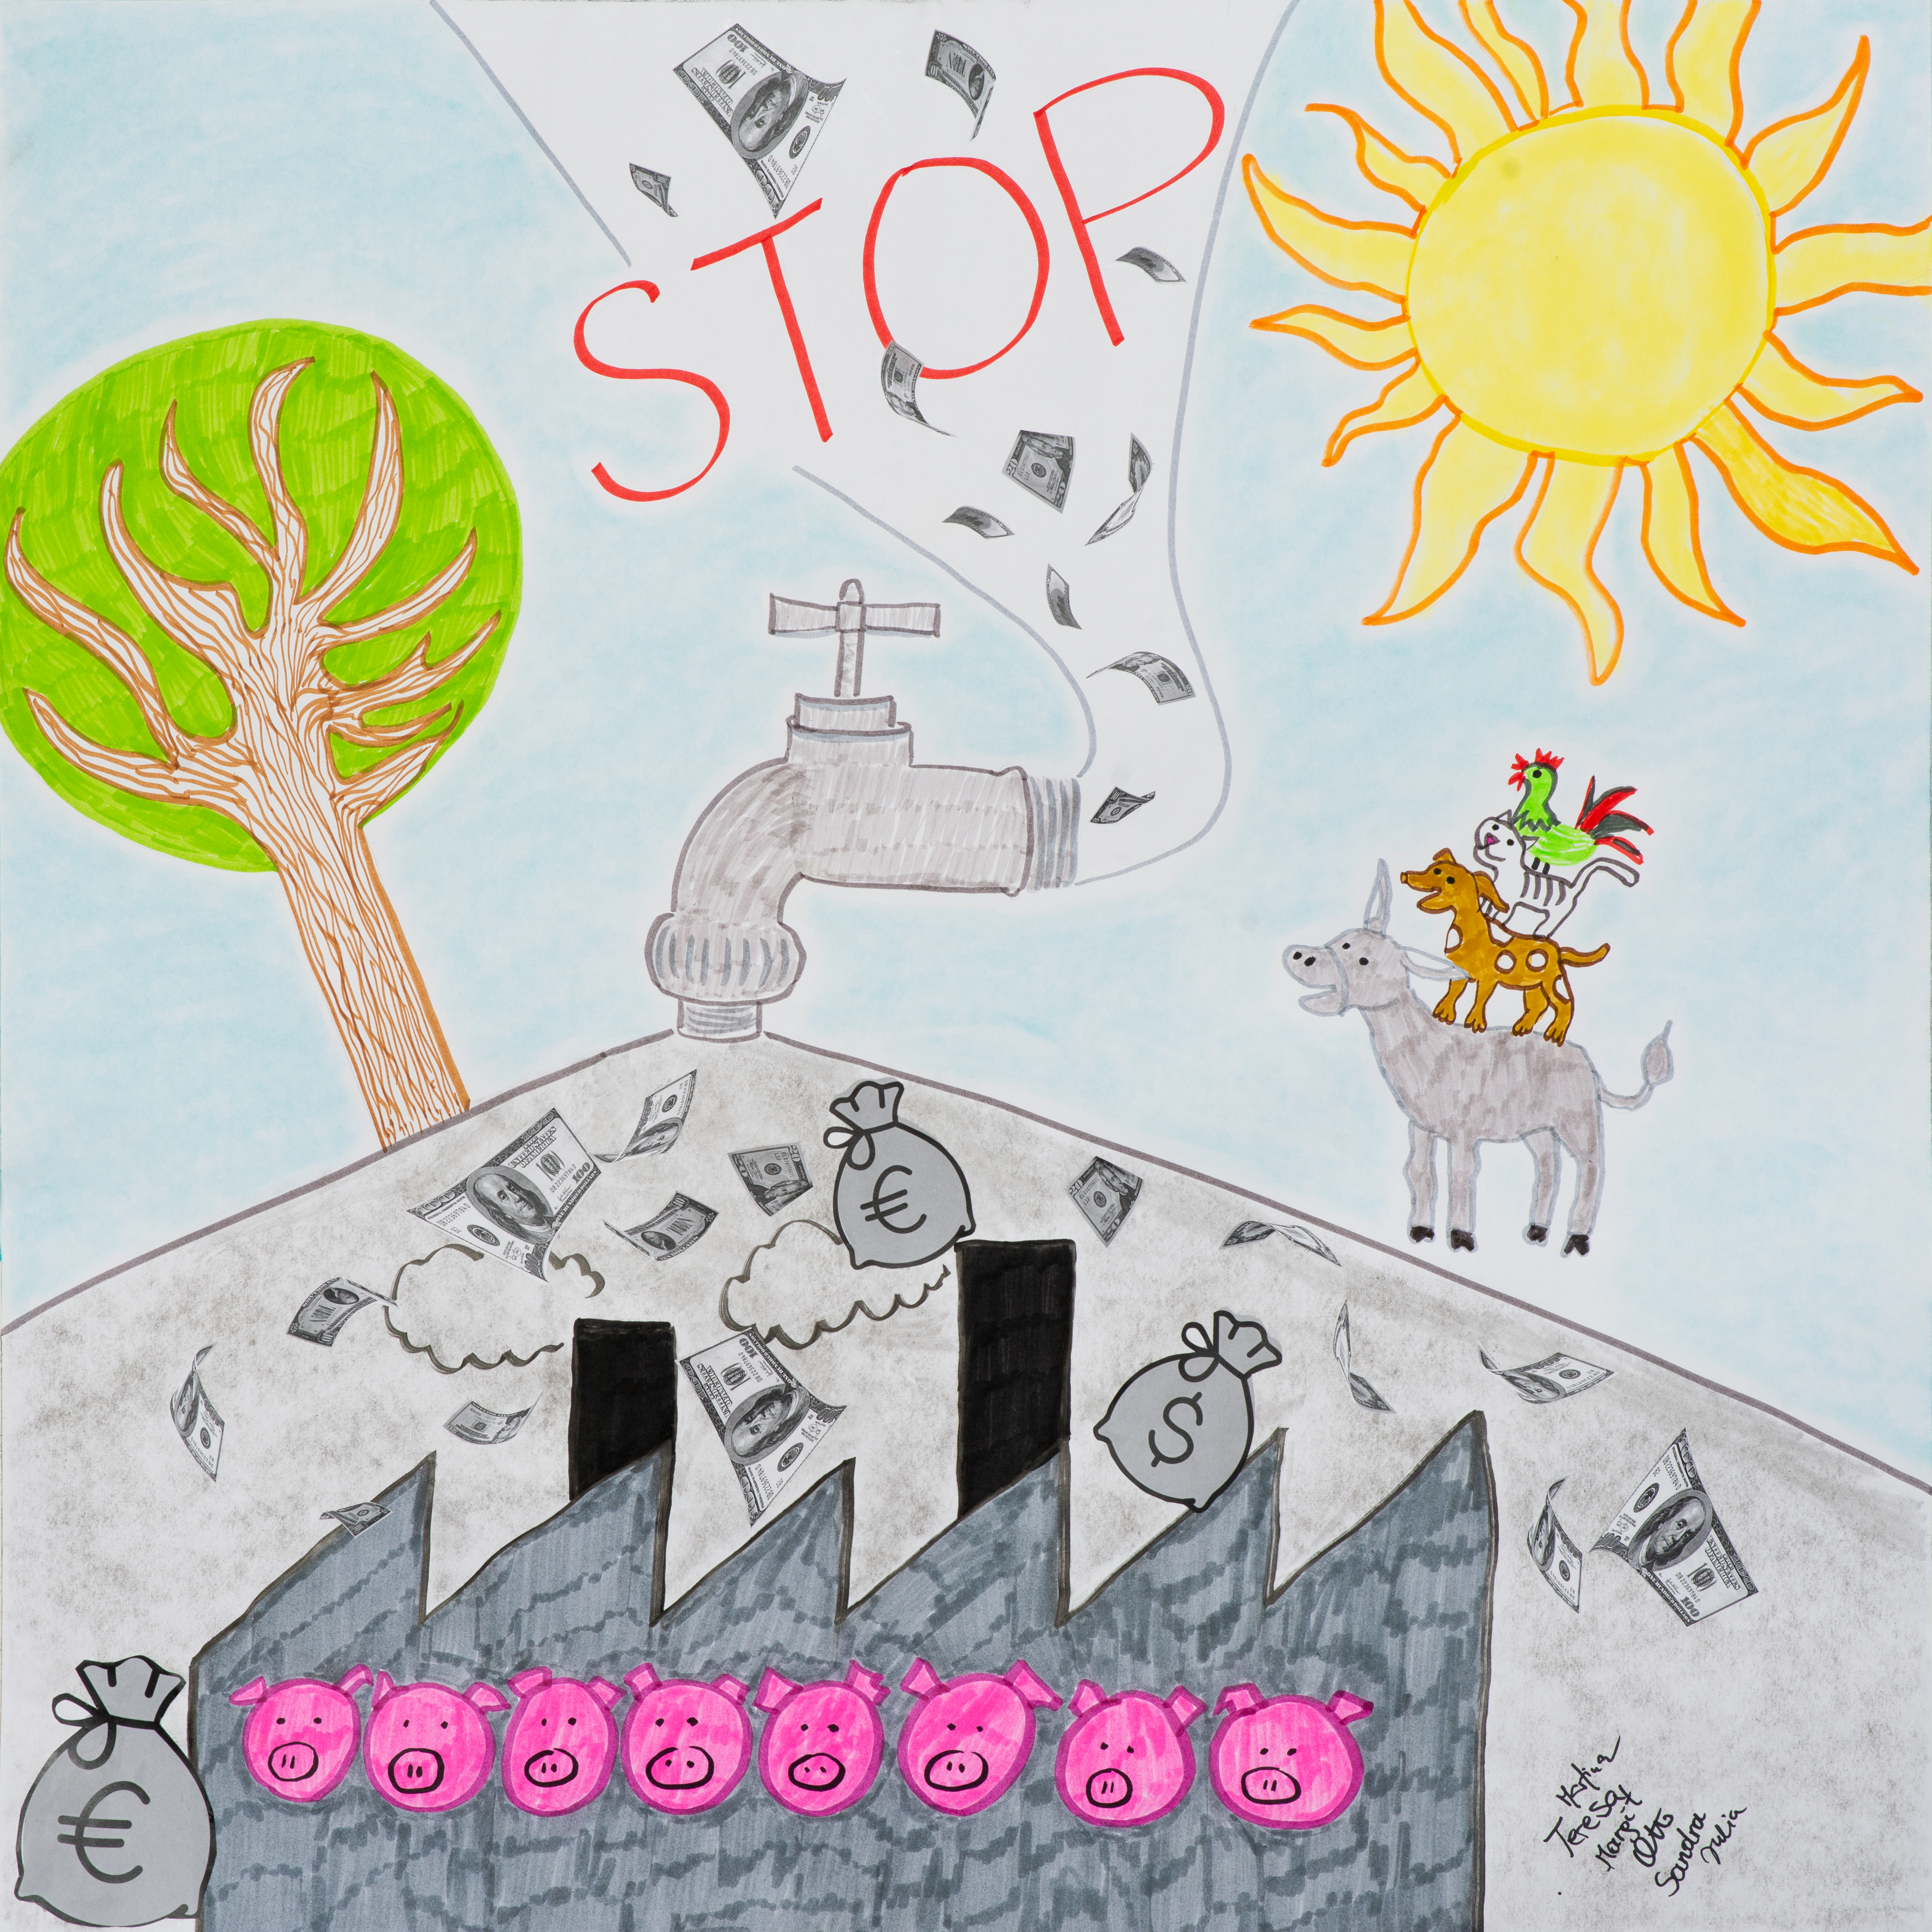 Ending all agricultural subsidies that harm animals and the environment created by the team, created by Margit D, Otto H, Sandra K, Julia M, Martina, N and Teresa P